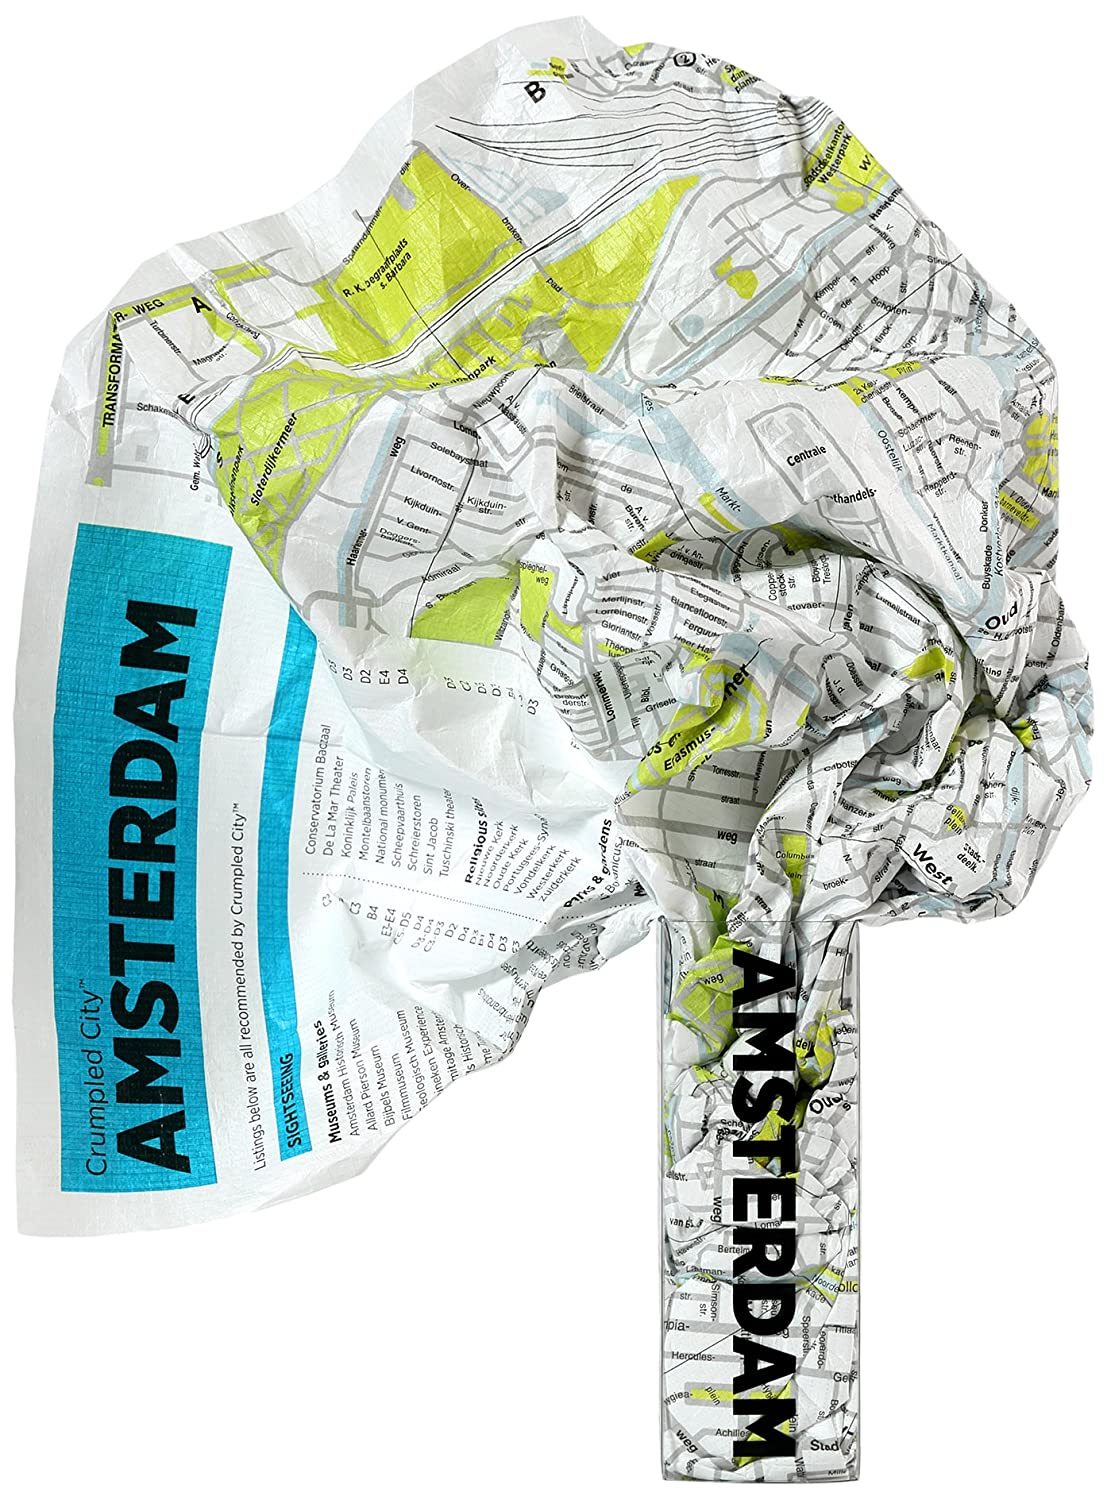 Crumpled city map. Amsterdam. Ediz. multilingue Crumpled City Maps Palomar (Firenze) MET00279 Paesi Bassi